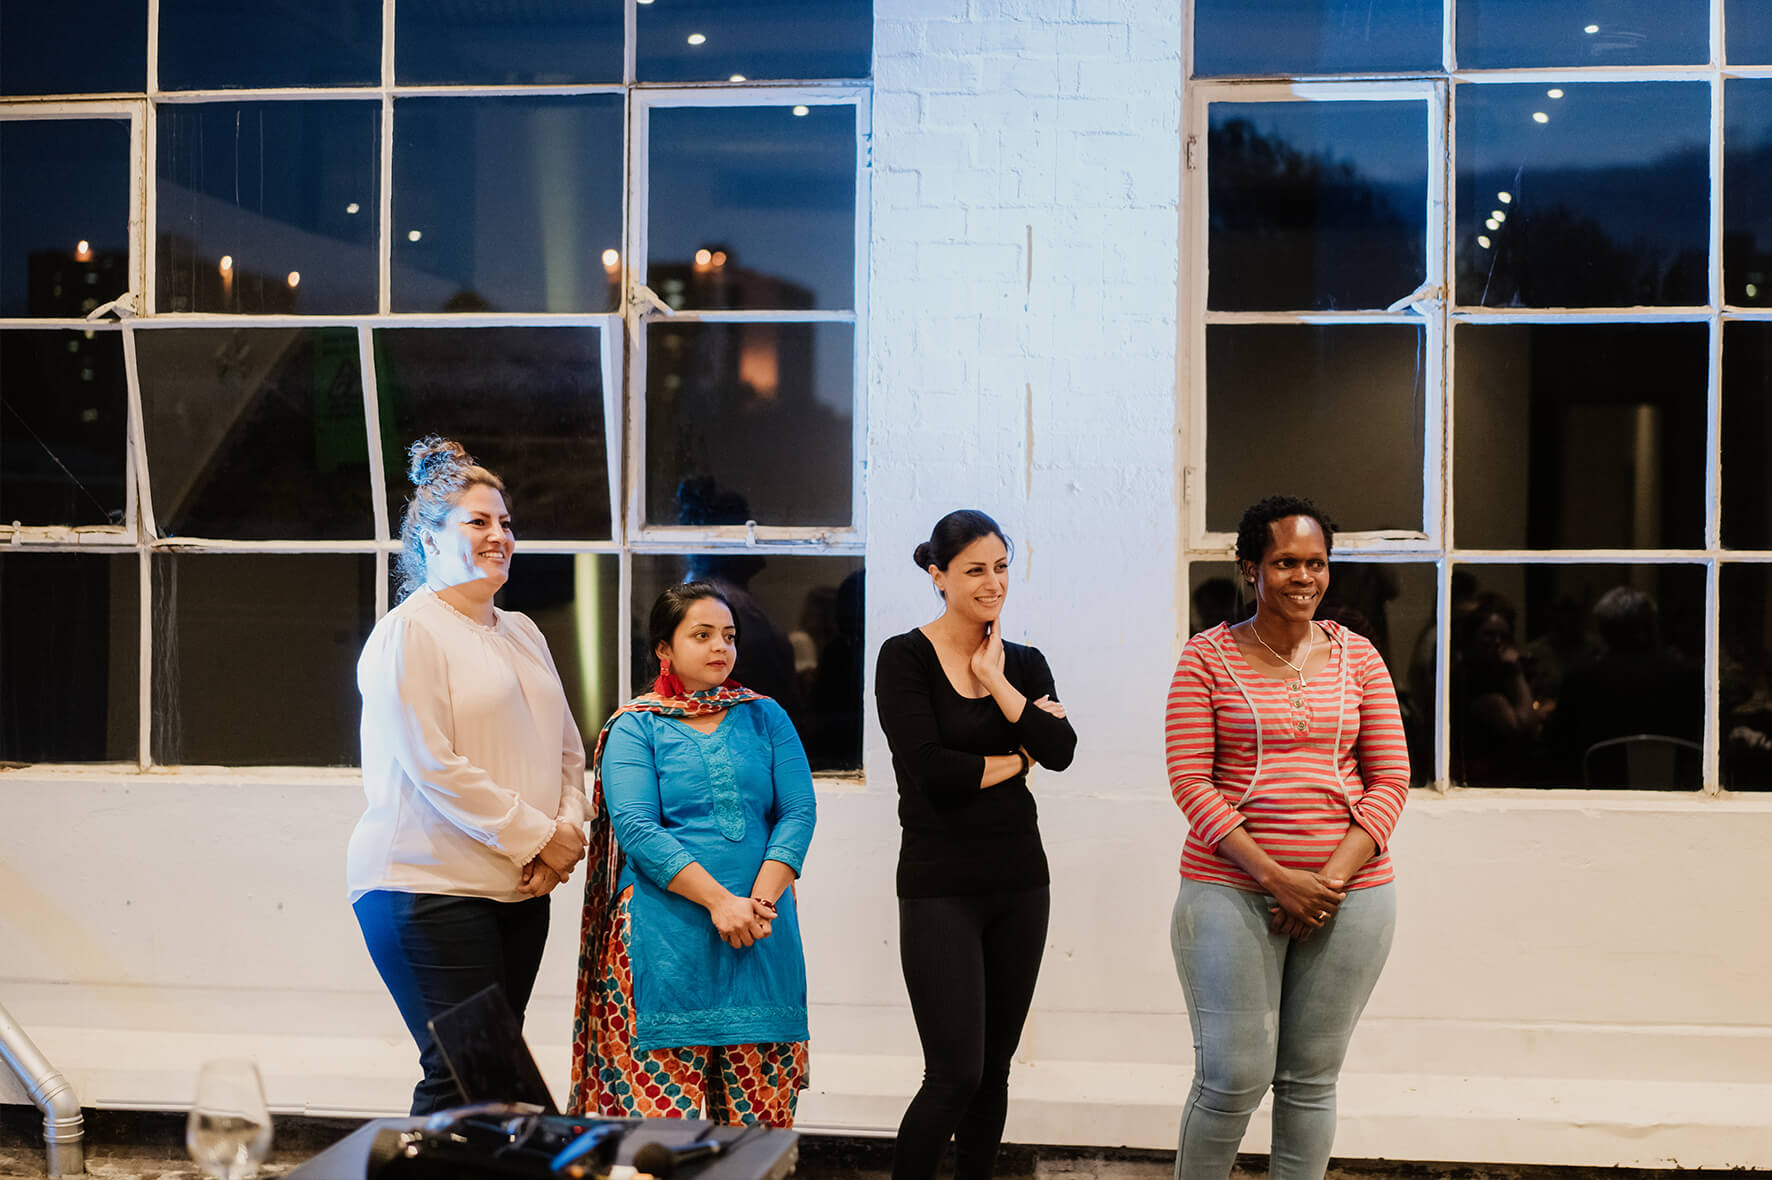 AmazingCo Refugee Degustation - From left - Somayeh, Darshini, Sepide and Perus at the end of the evening.jpg